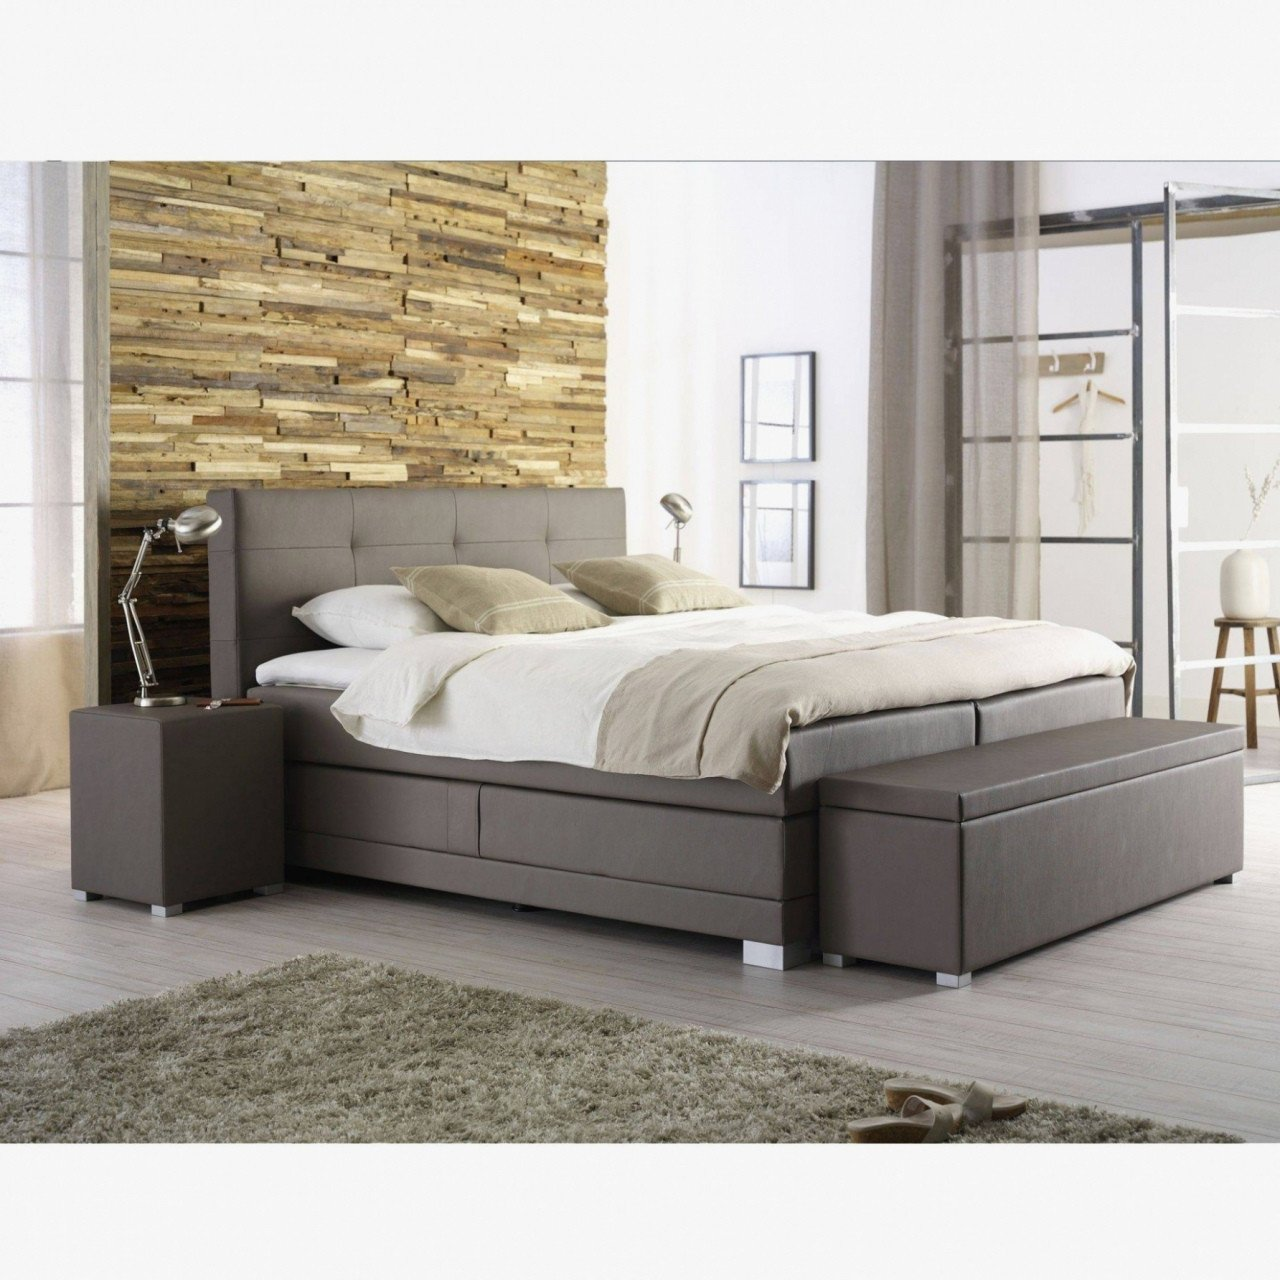 White Twin Bedroom Set Awesome Bed with Drawers Under — Procura Home Blog